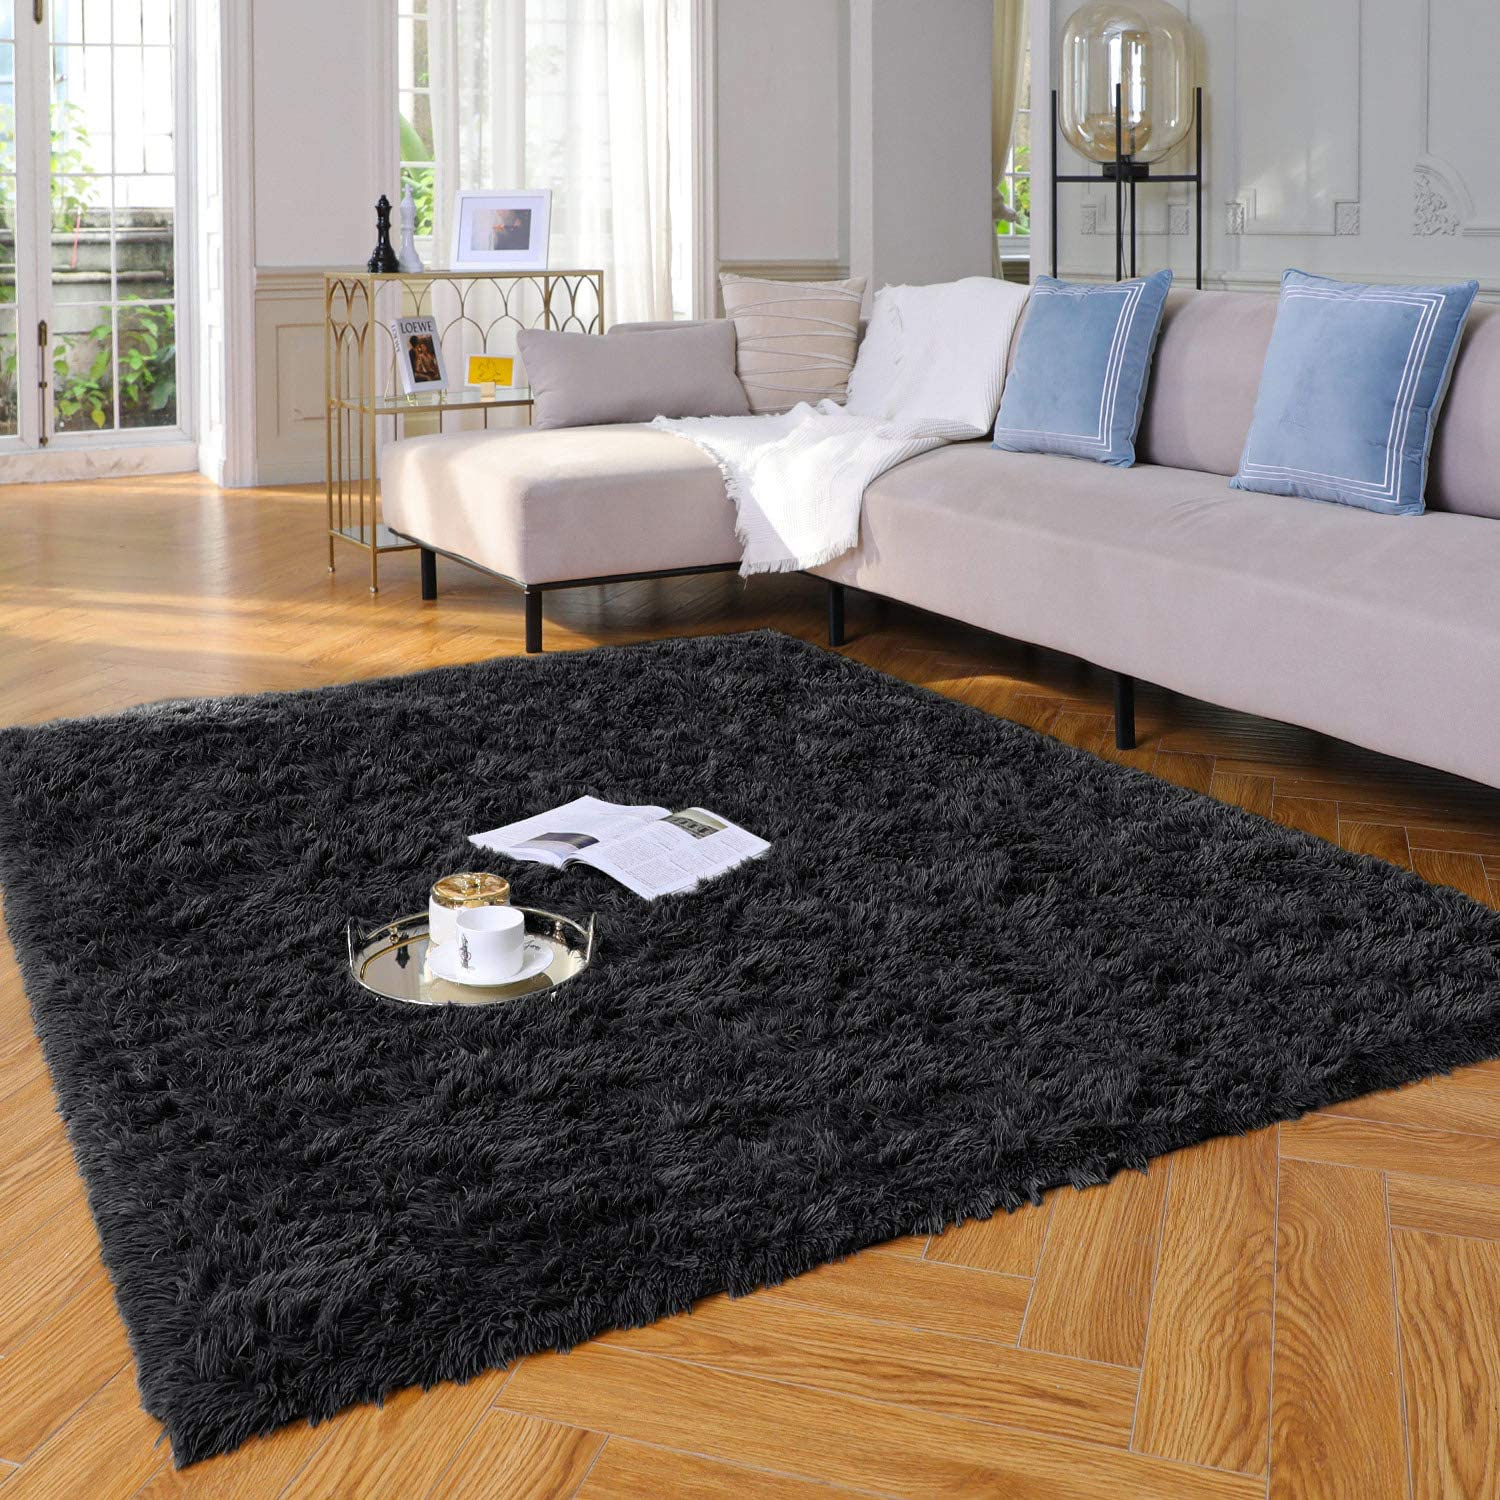 Yome Machine Washable Area Rug, Fuzzy Soft Carpet with Durable Edges, Home Decor Floor Rug for Your Home's Living Room, Bedroom, Kid's Room, Office, Fluffy Rug 4 x 5.3 Feet, Deep-Black.